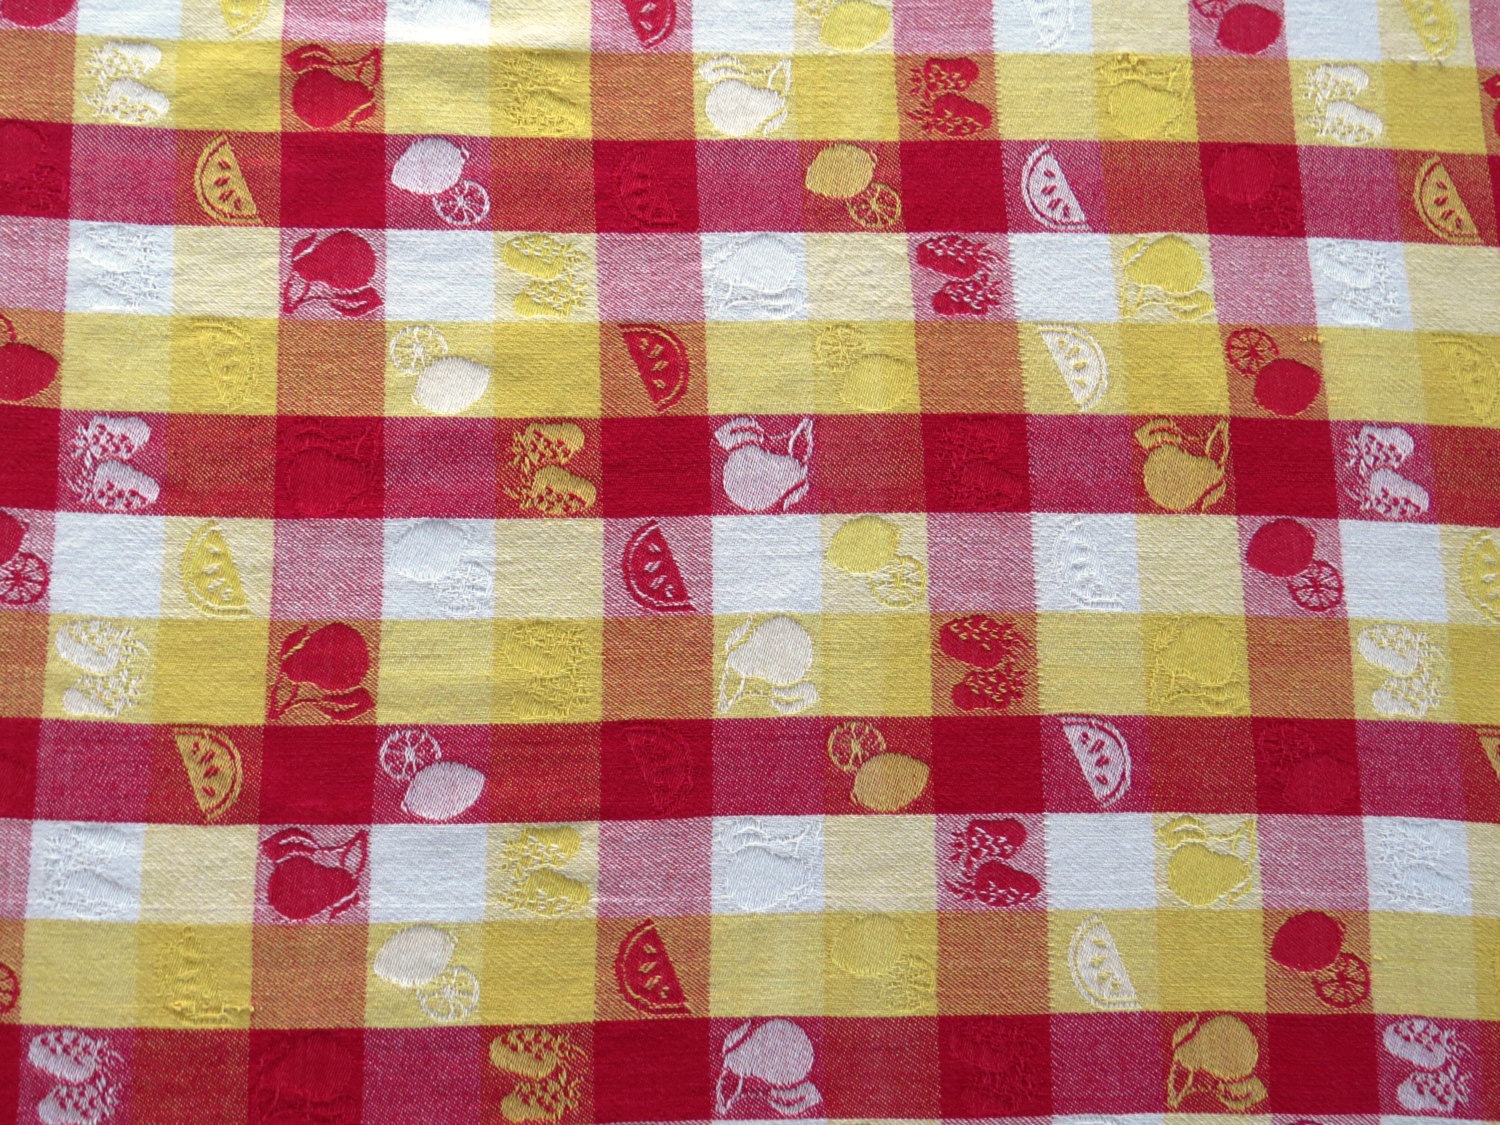 Vinyl Tablecloths | Vinyl Tablecloth 60 X 84 | 70 Round Tablecloth